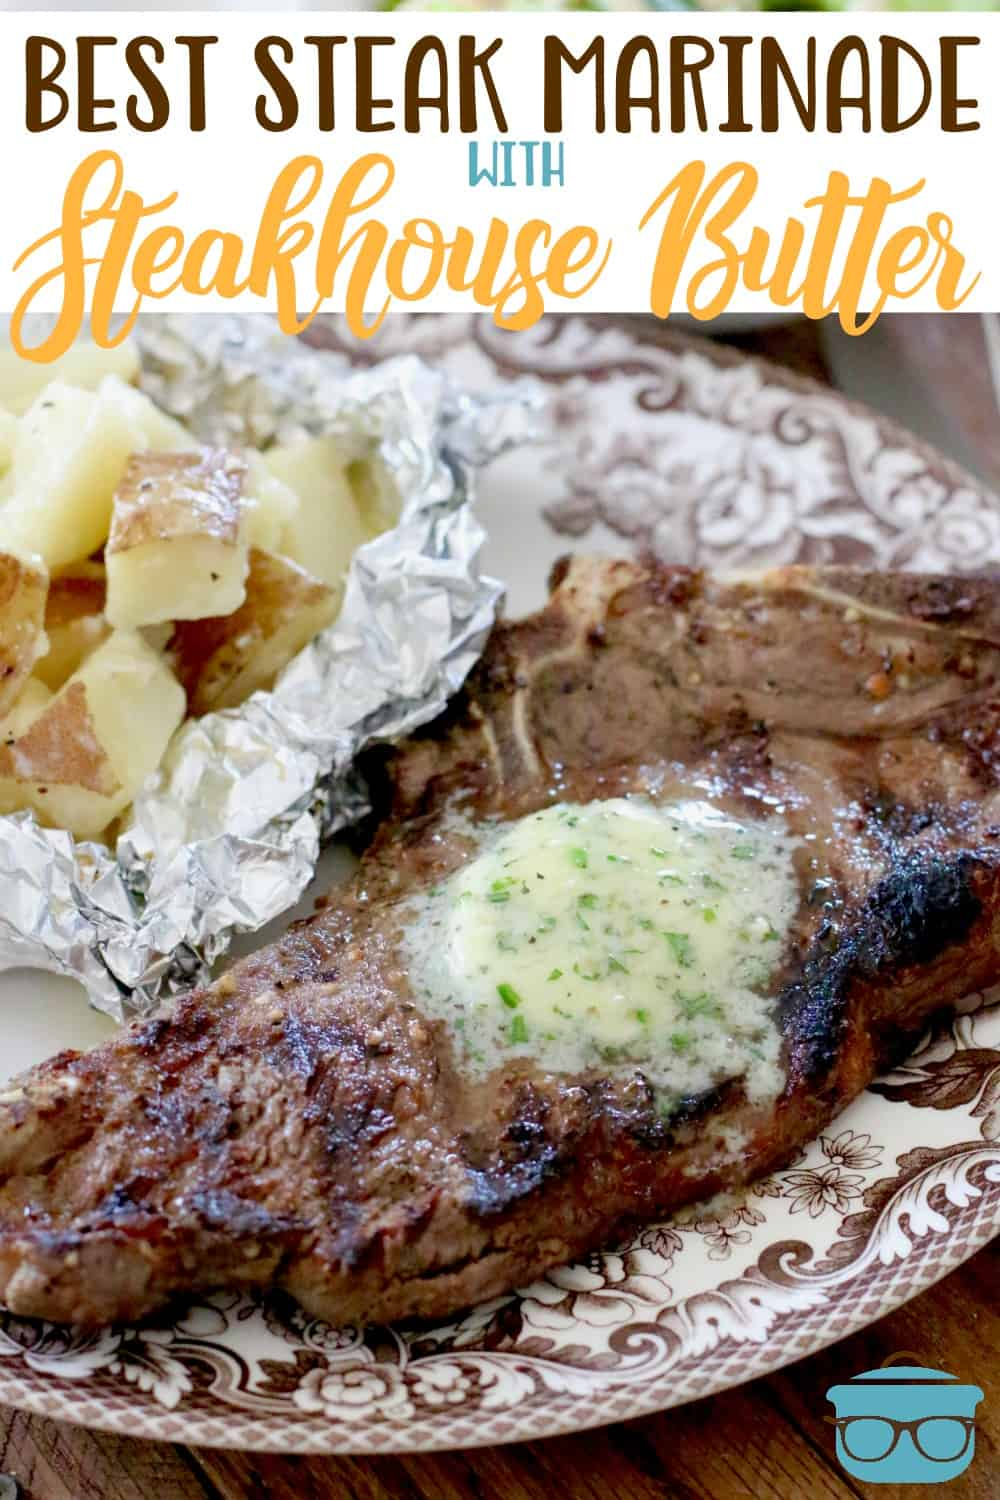 Make the best steak with this Best Steak Marinade and Steakhouse Butter. Make a restaurant style meal at home! Plus, learn how to grill a perfect steak! #grilling #steakmarinade #garlic butter